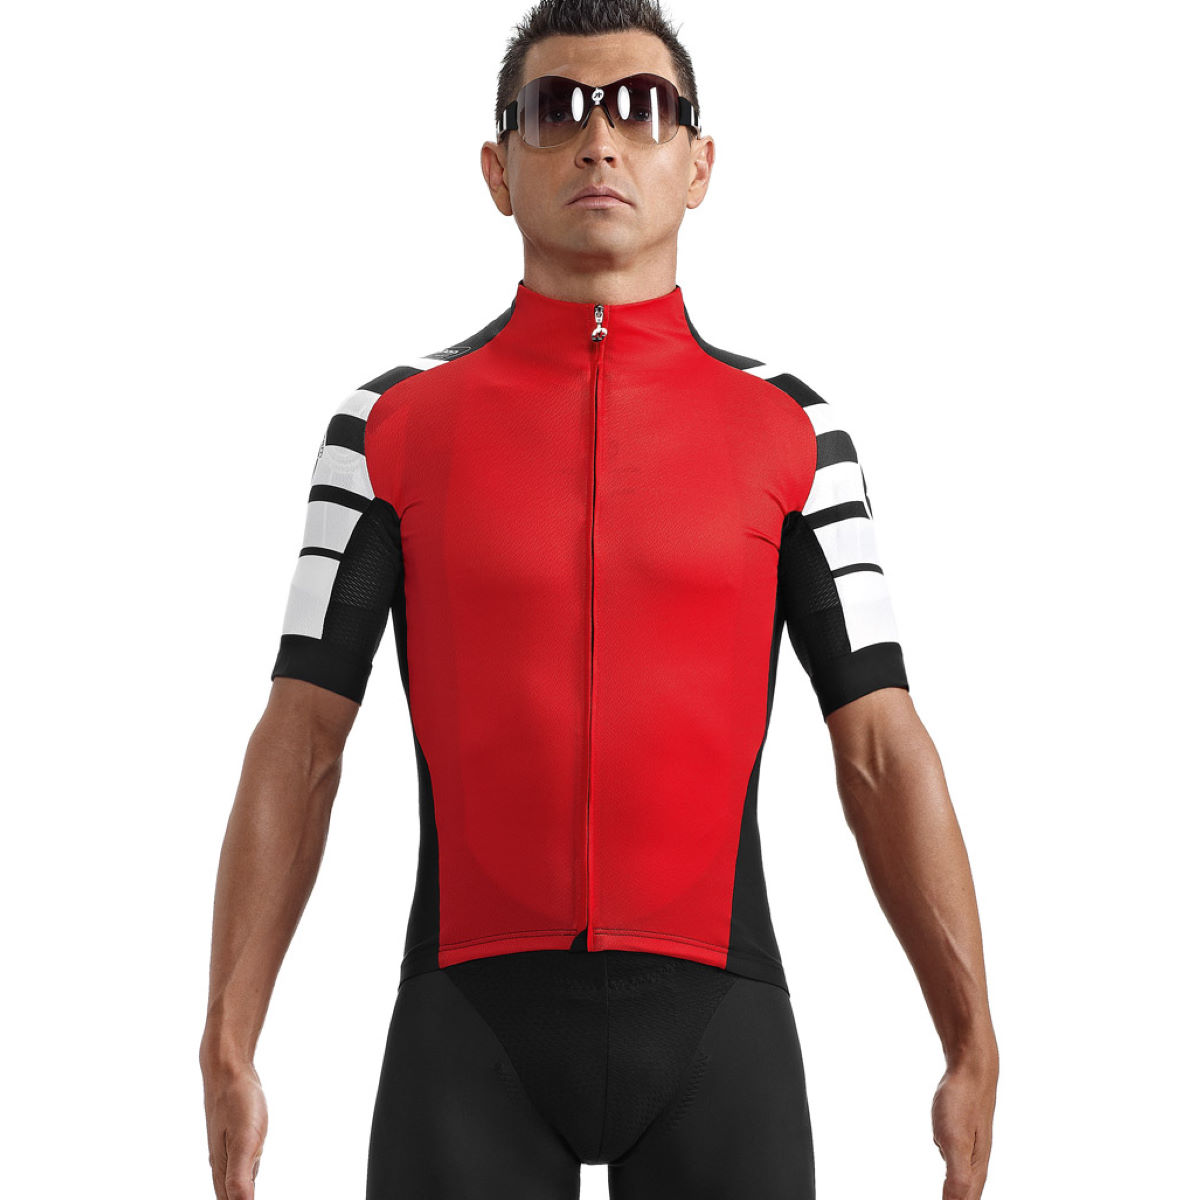 Maillot Assos SS.cento_s7 - XL Red Swiss Maillots vélo à manches courtes